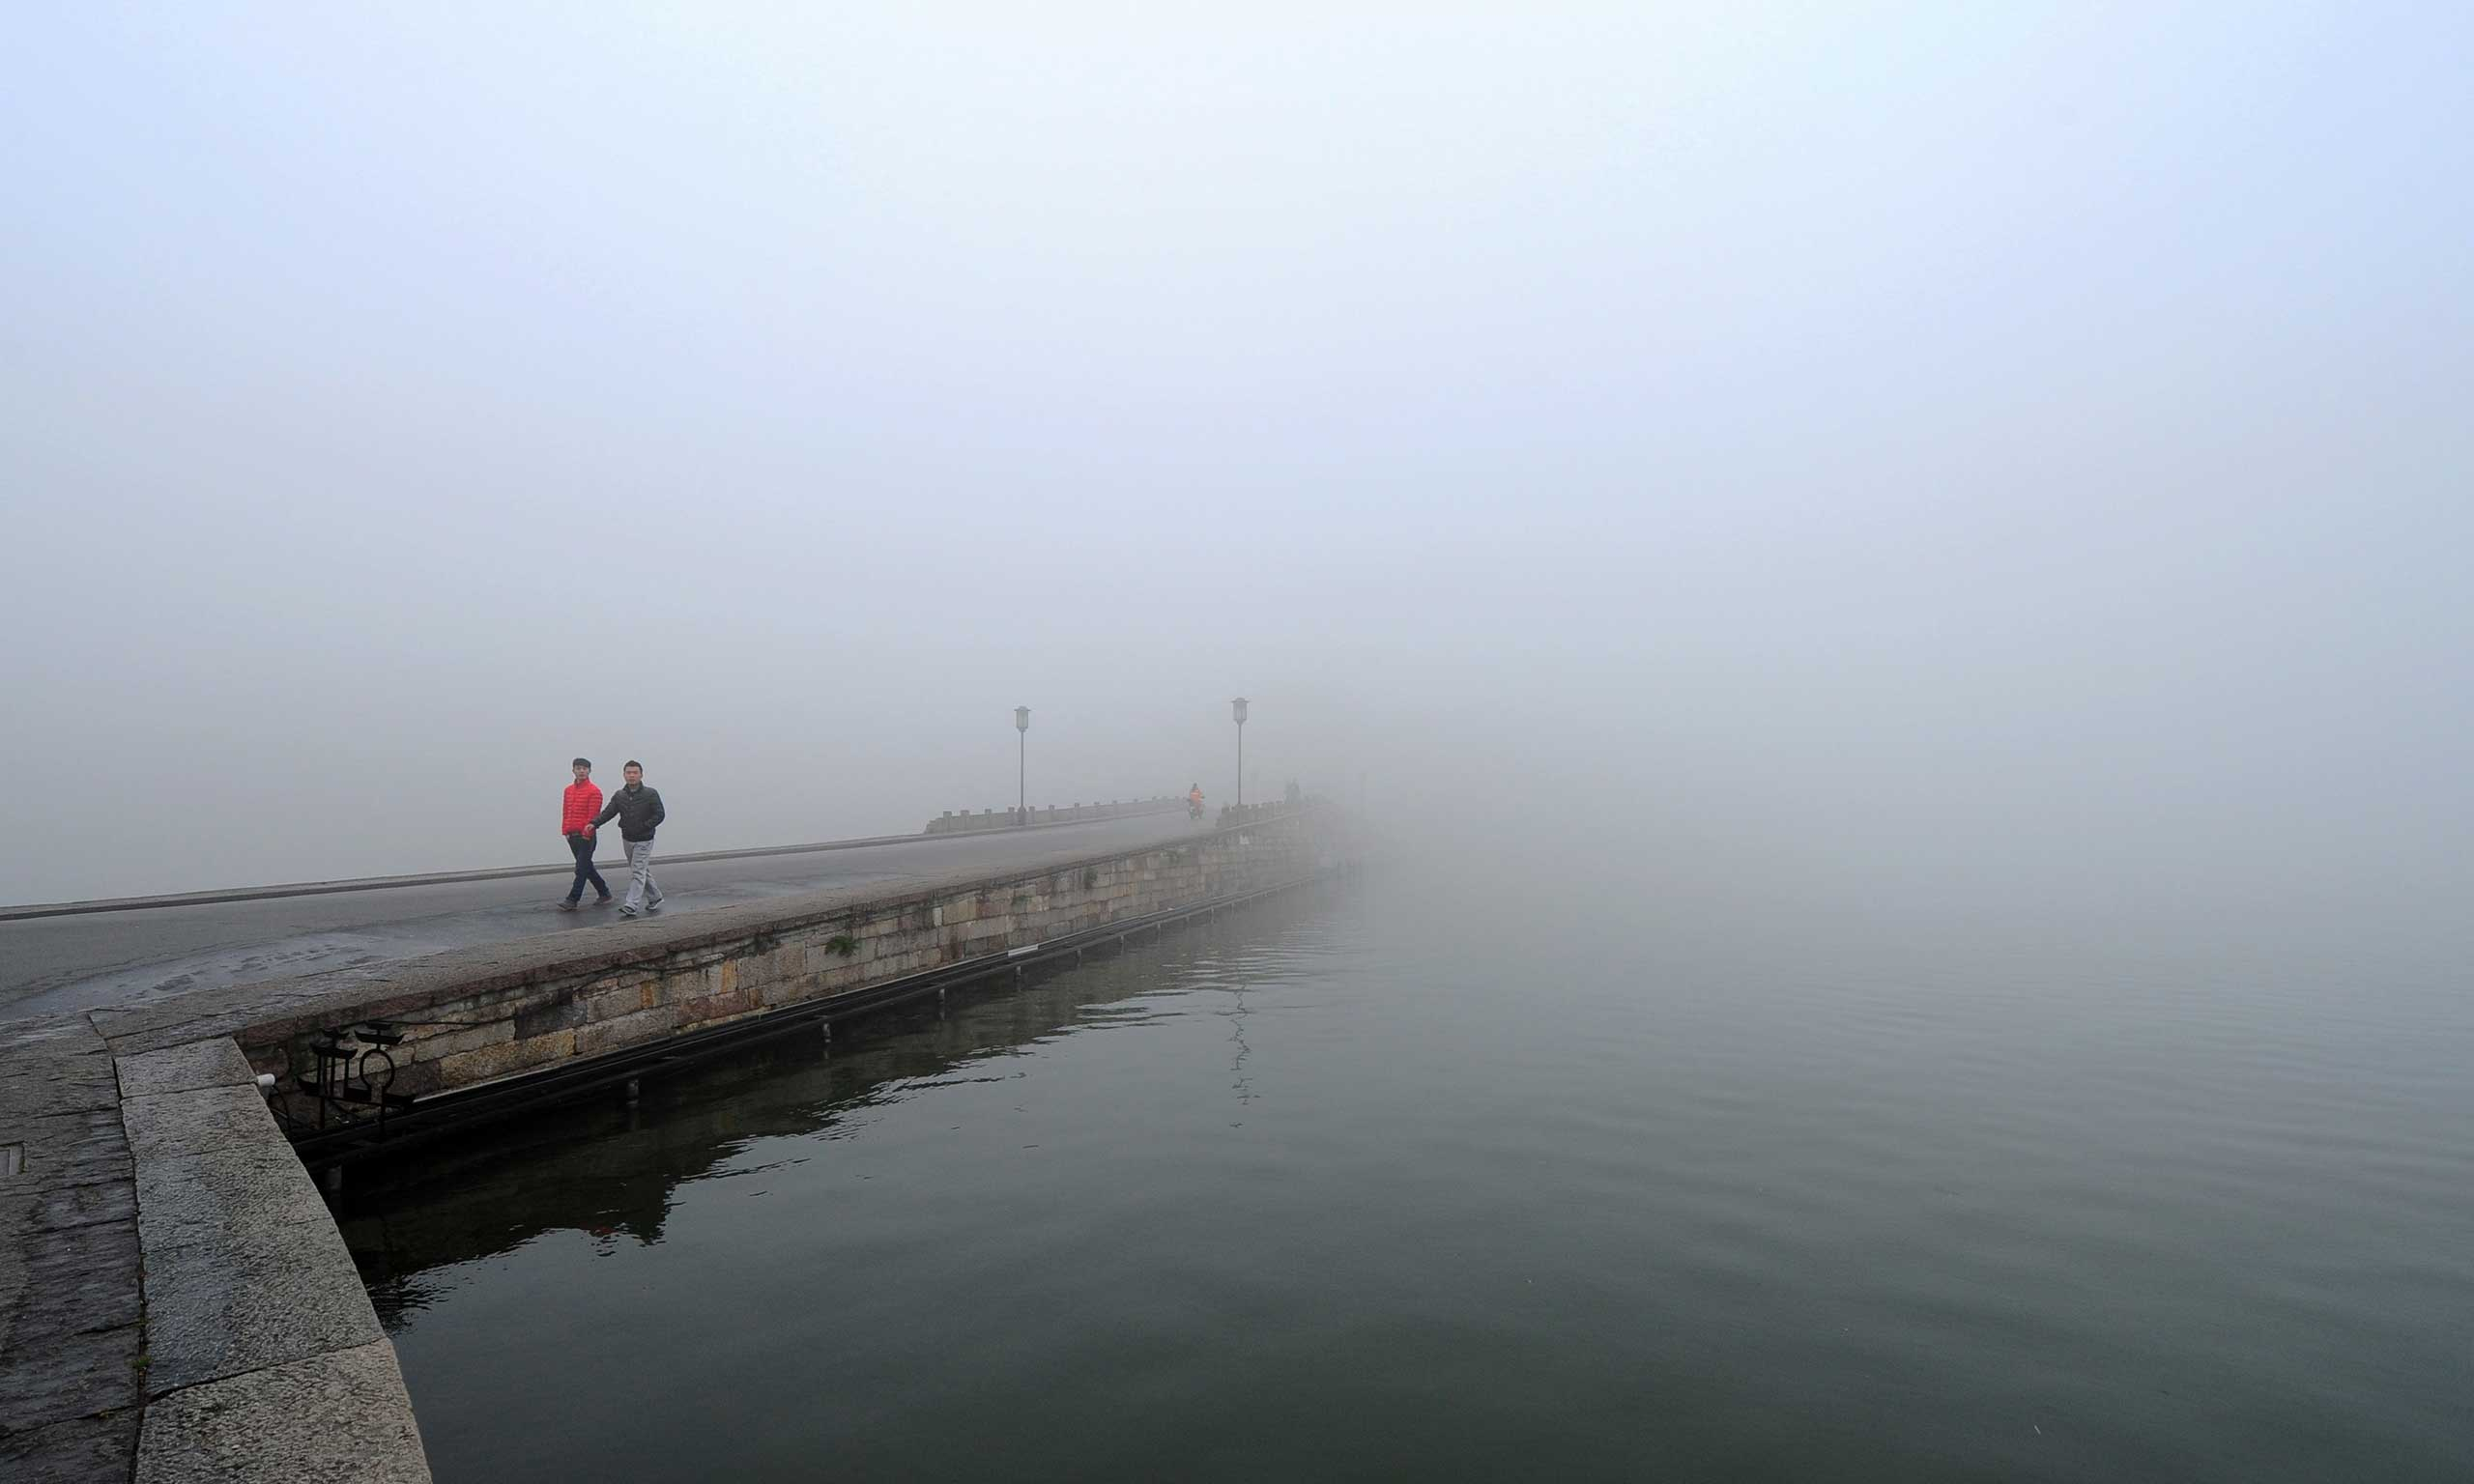 <b>China Smog</b> Tourists walk on the promenade along the bank of the West Lake in heavy smog in Hangzhou city, east China Zhejiang province on Jan. 31, 2014.